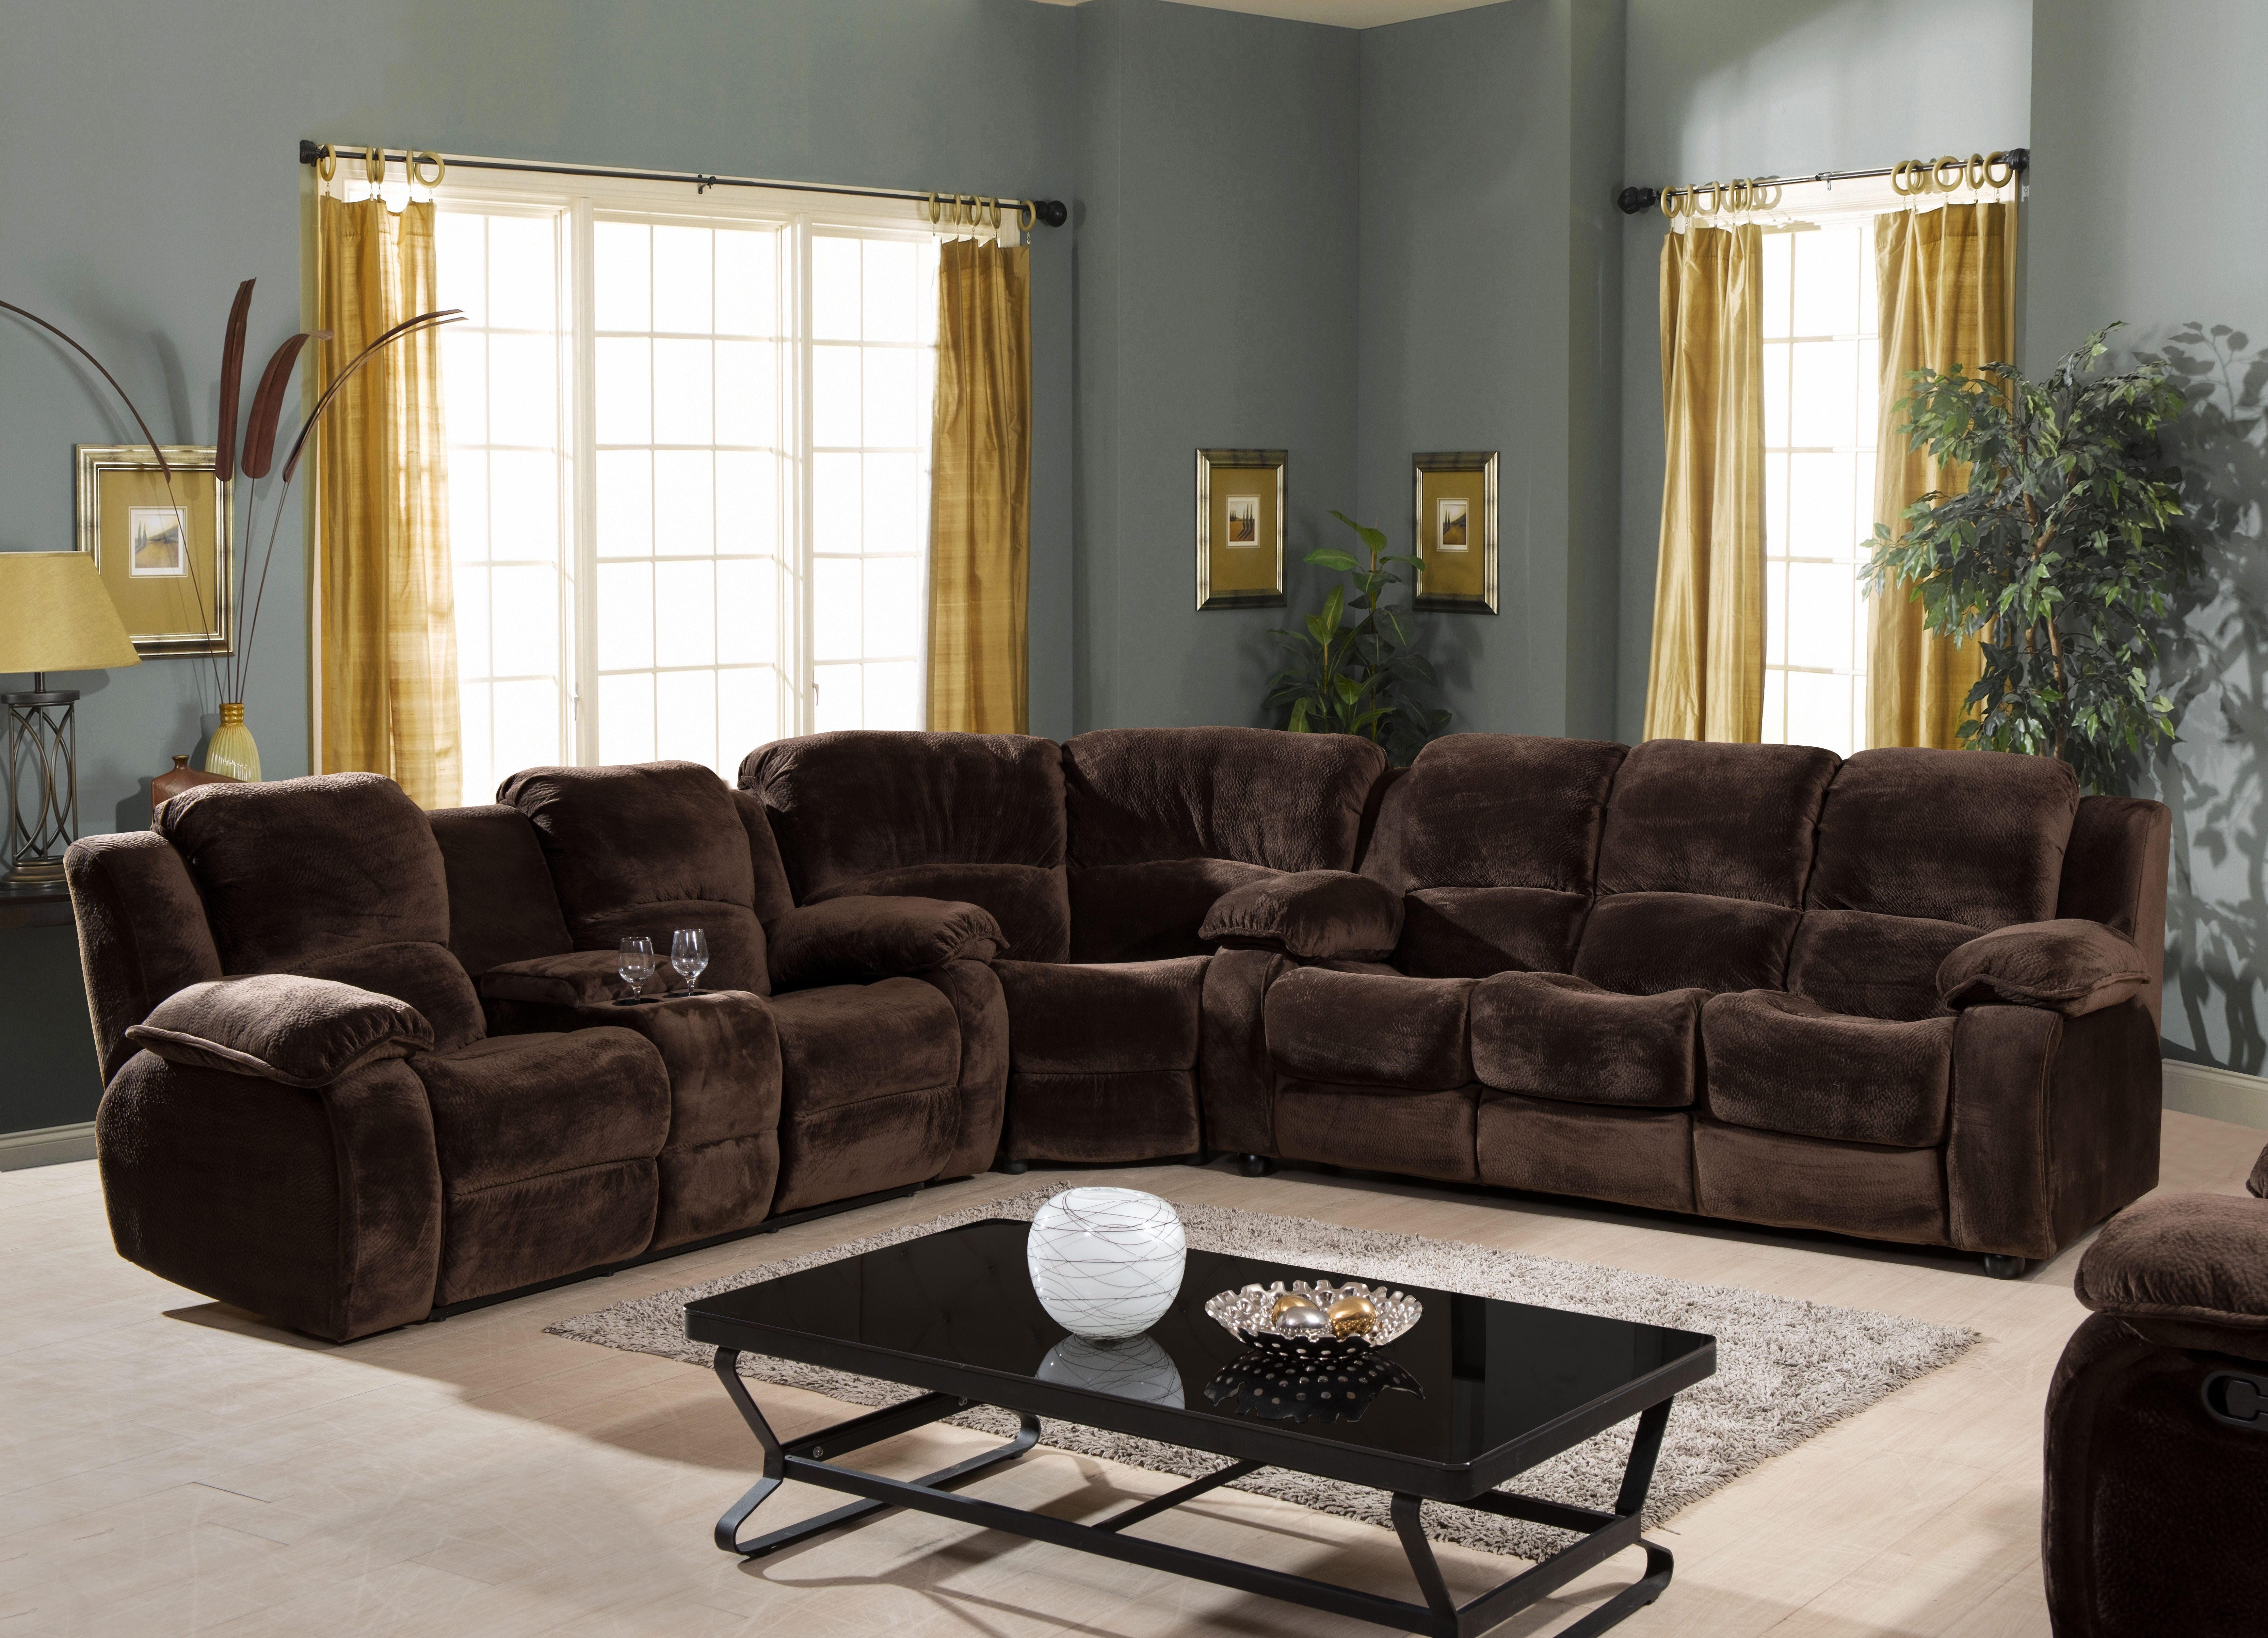 Stock Information – United Furniture Throughout Most Recent Sectional Sofas In Stock (View 16 of 20)